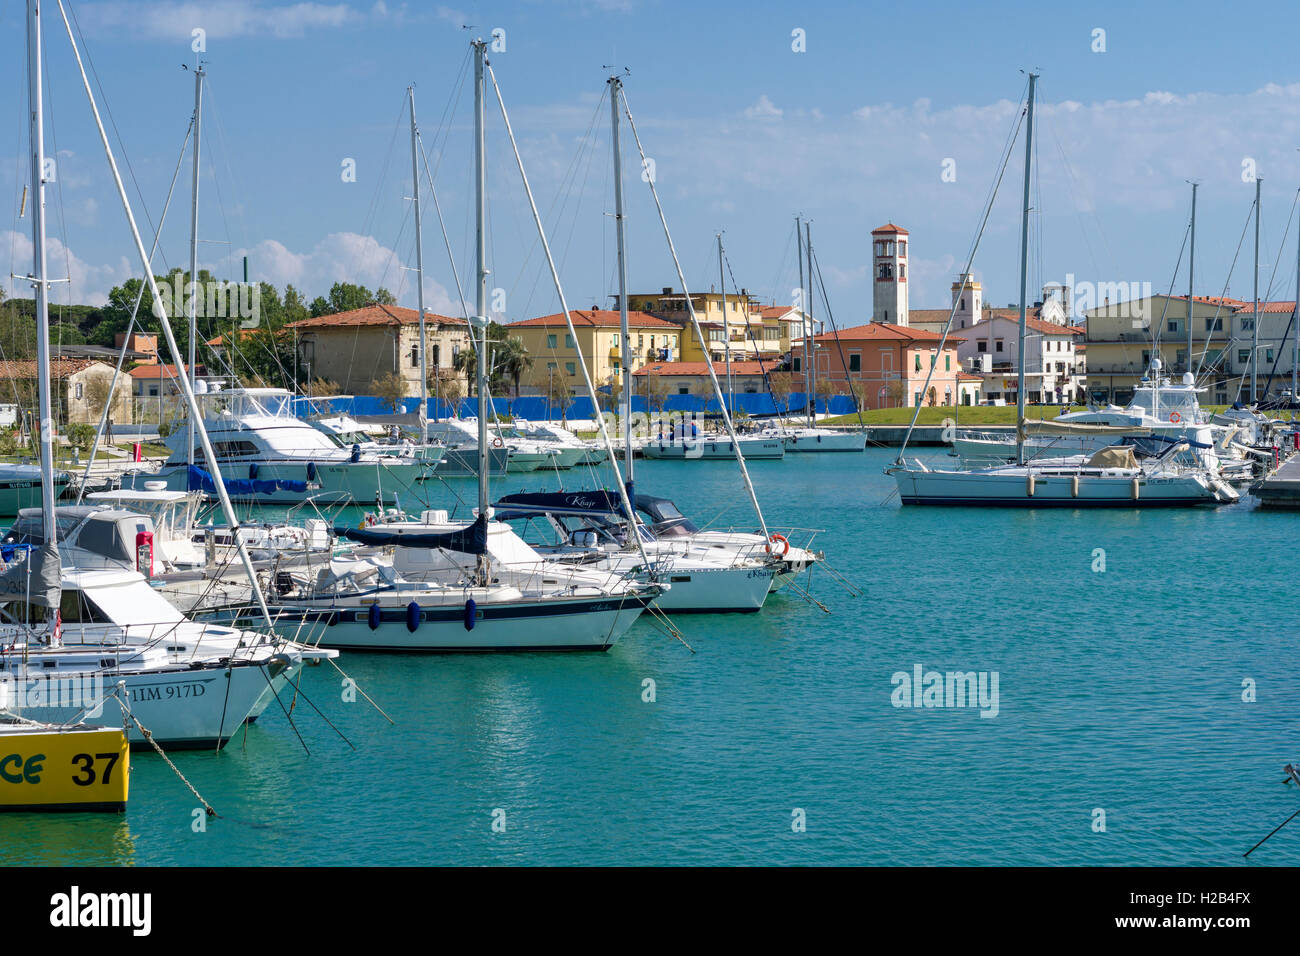 Sailing and motor boats are anchored in the harbour, Marina di Pisa, Tuscany, Italy - Stock Image